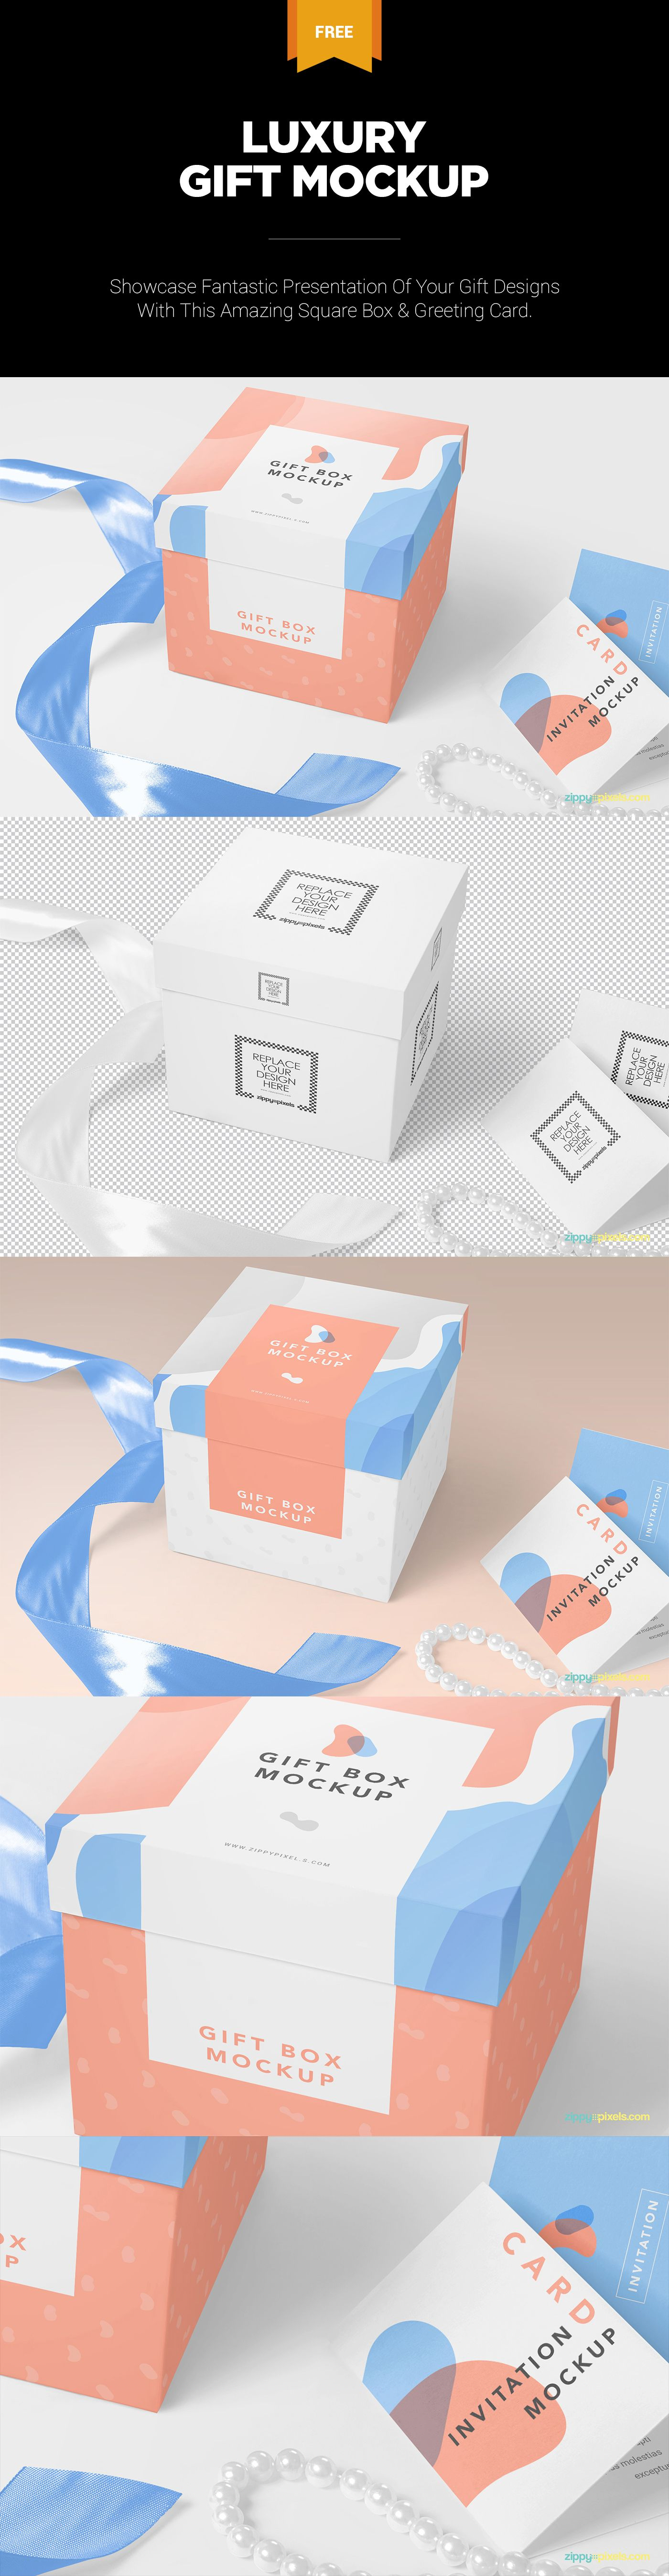 Download Free Luxury Gift Mockup Zippypixels Gift Box Design Diy Gift Wrapping Packaging Template